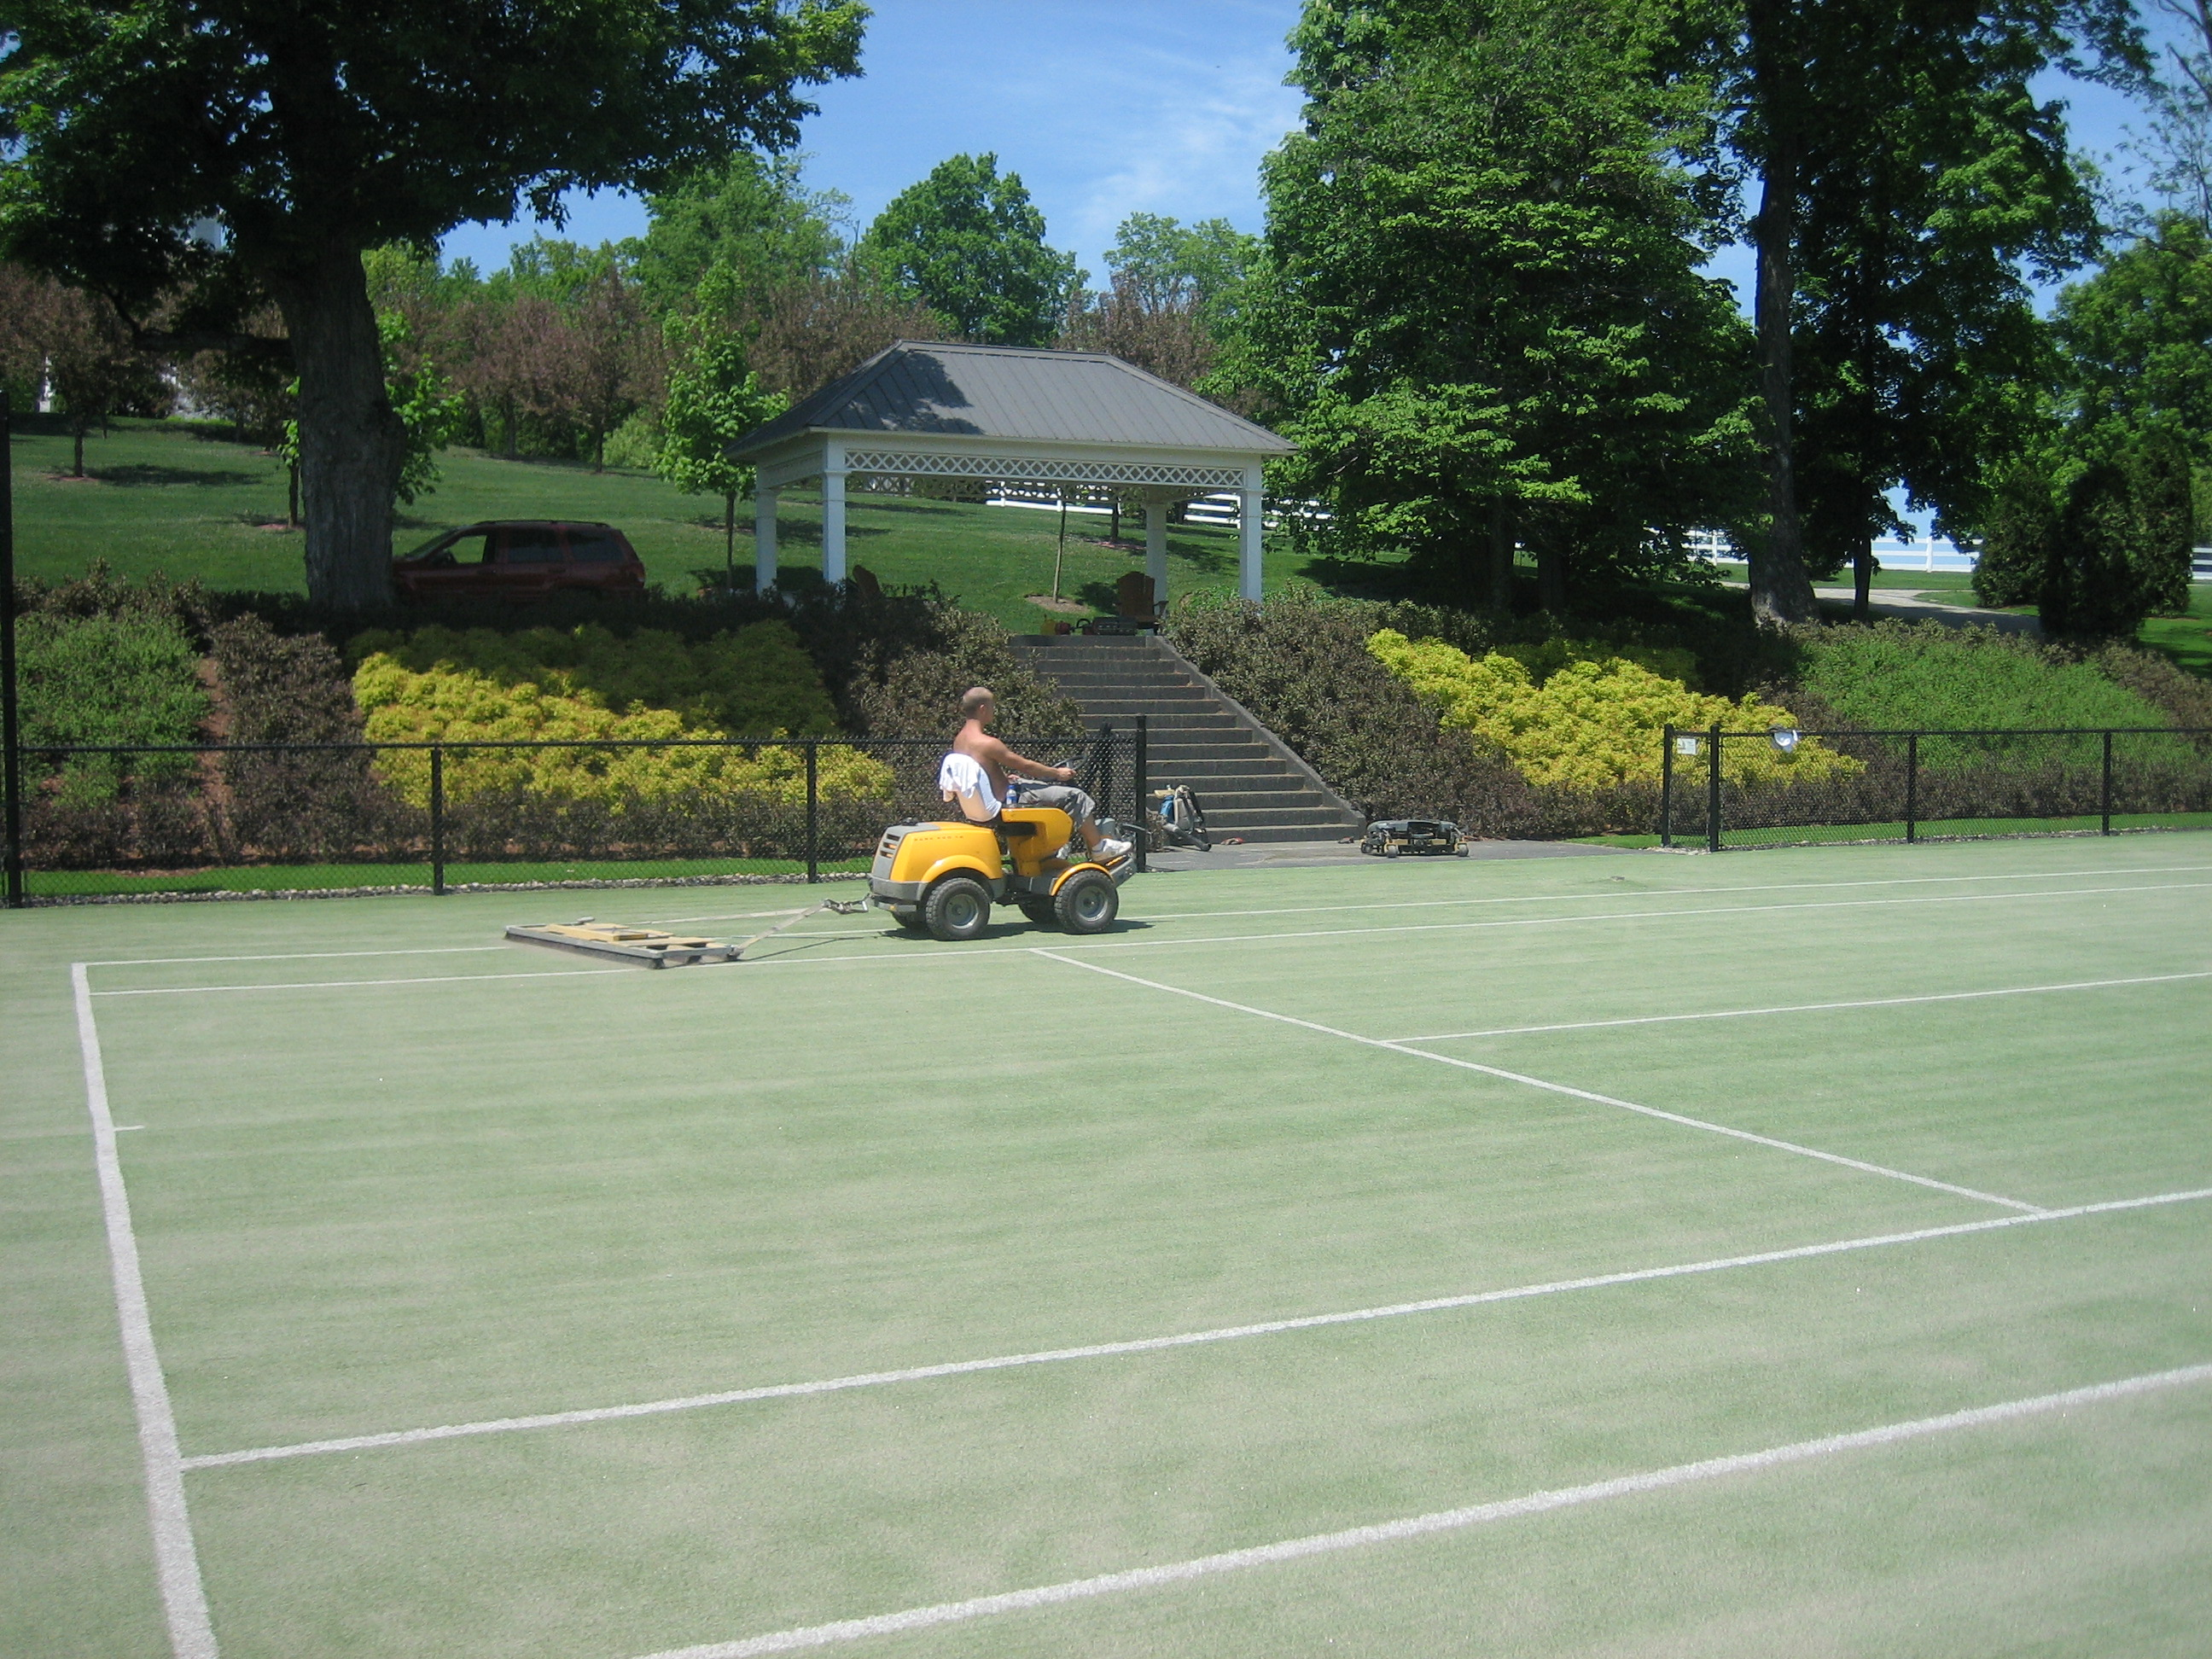 Cleaning tennis